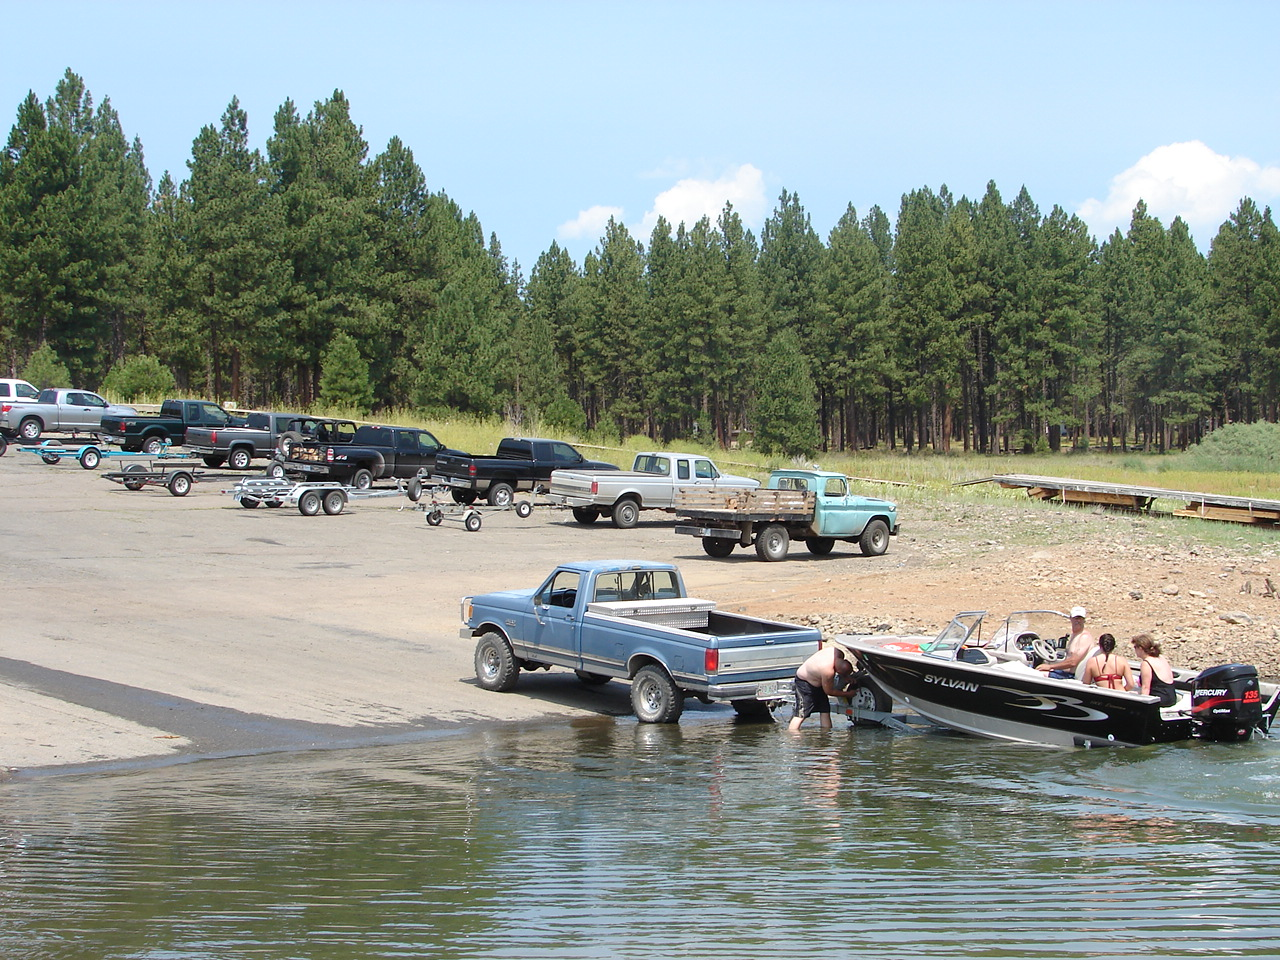 People unloading a powerboat on Union Creek boat ramp